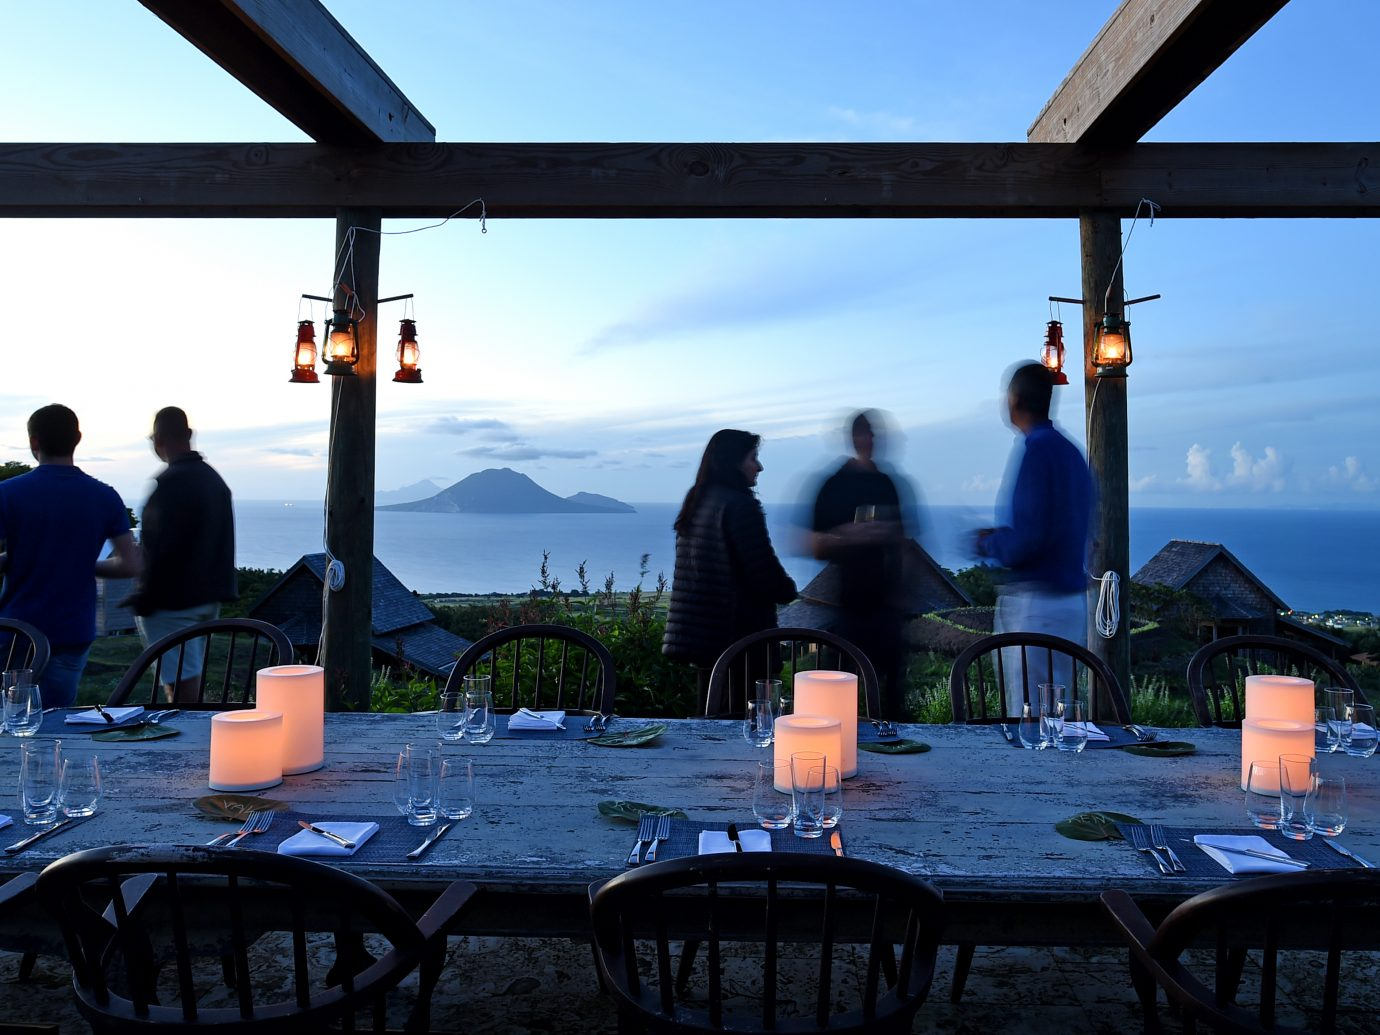 Farm to table experience with people socializing at dusk with a beautiful background